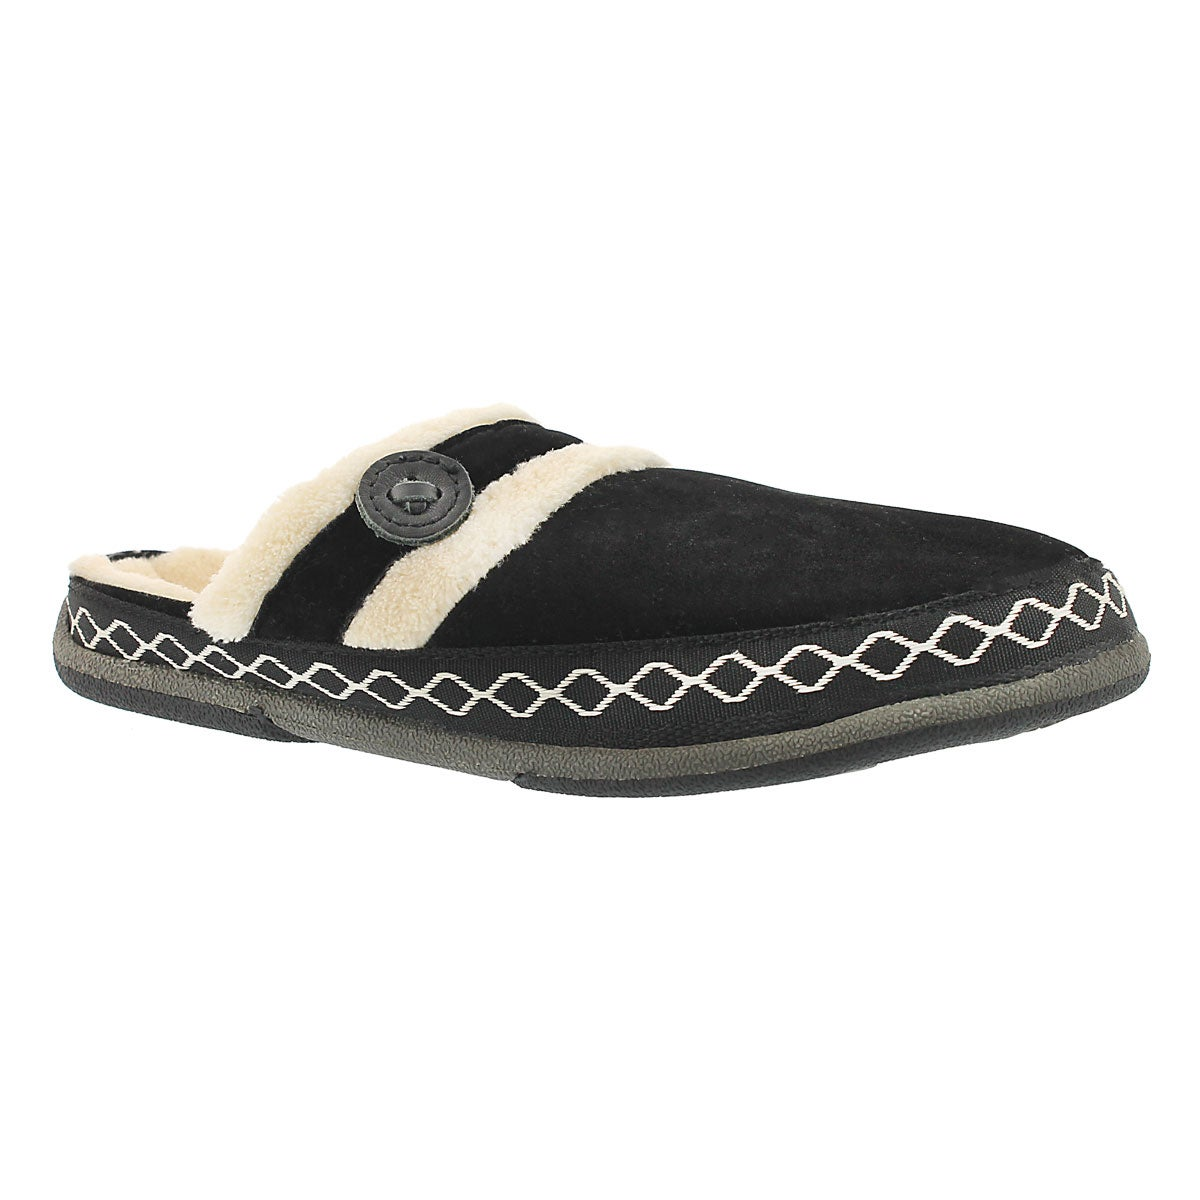 Lds Savoy black micro suede slipper